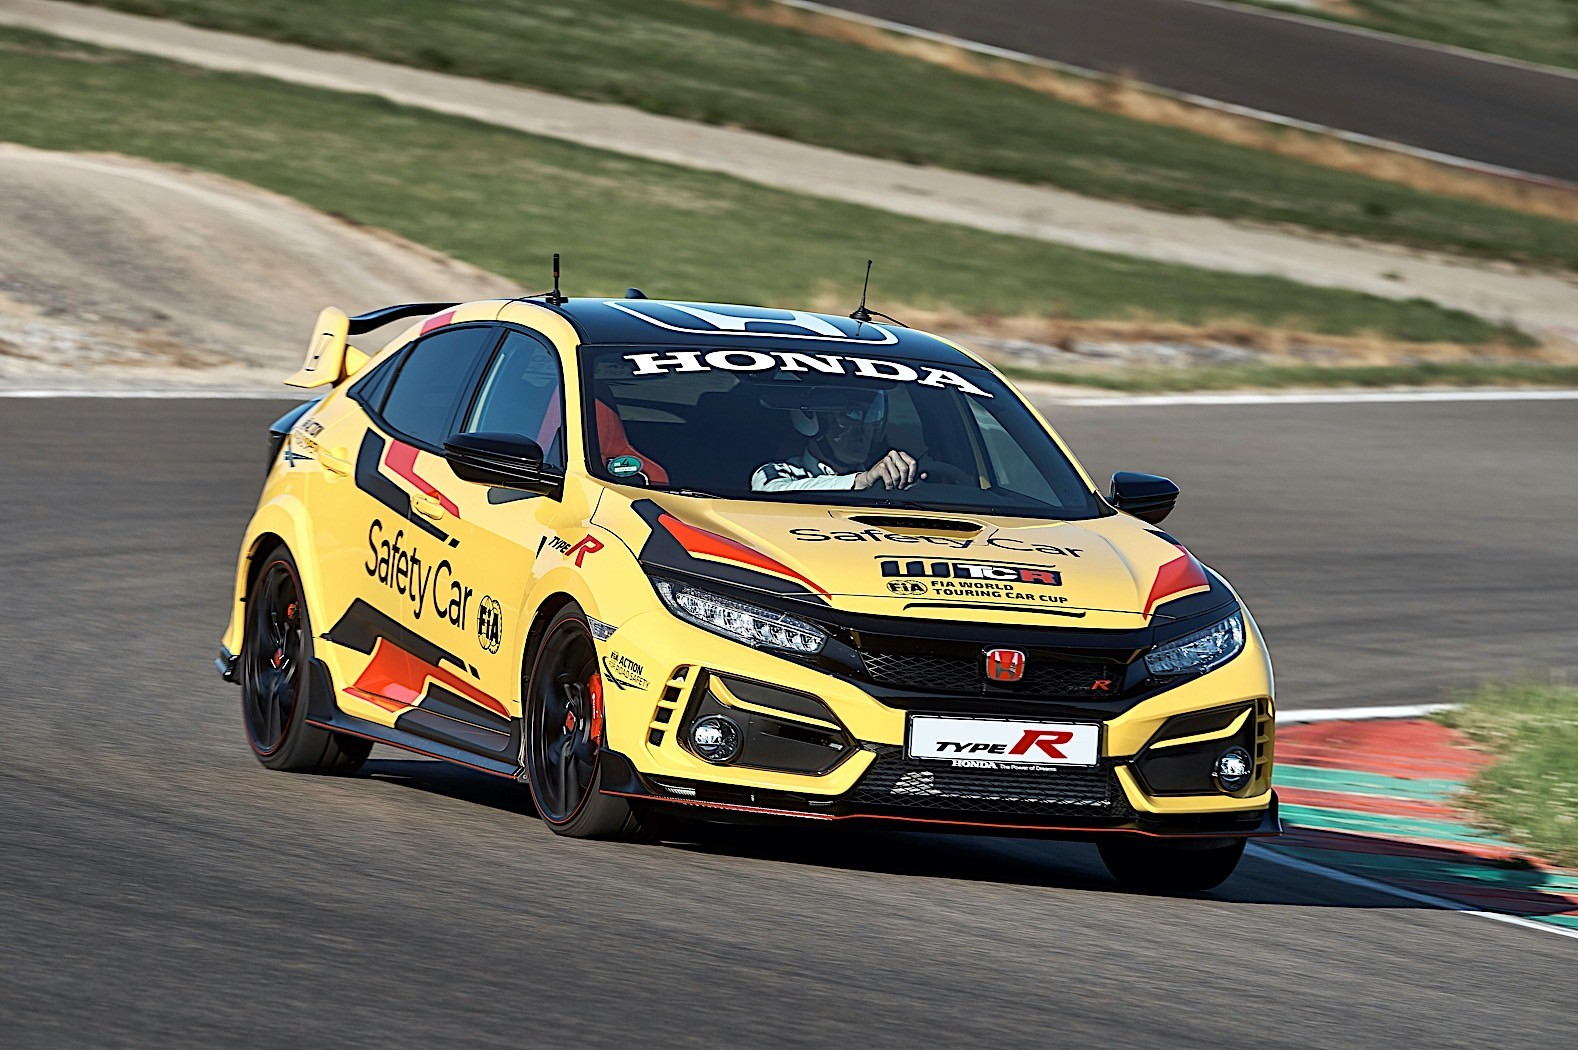 Honda_Civic_Type_R_Limited_safety_car_WTCR_0002